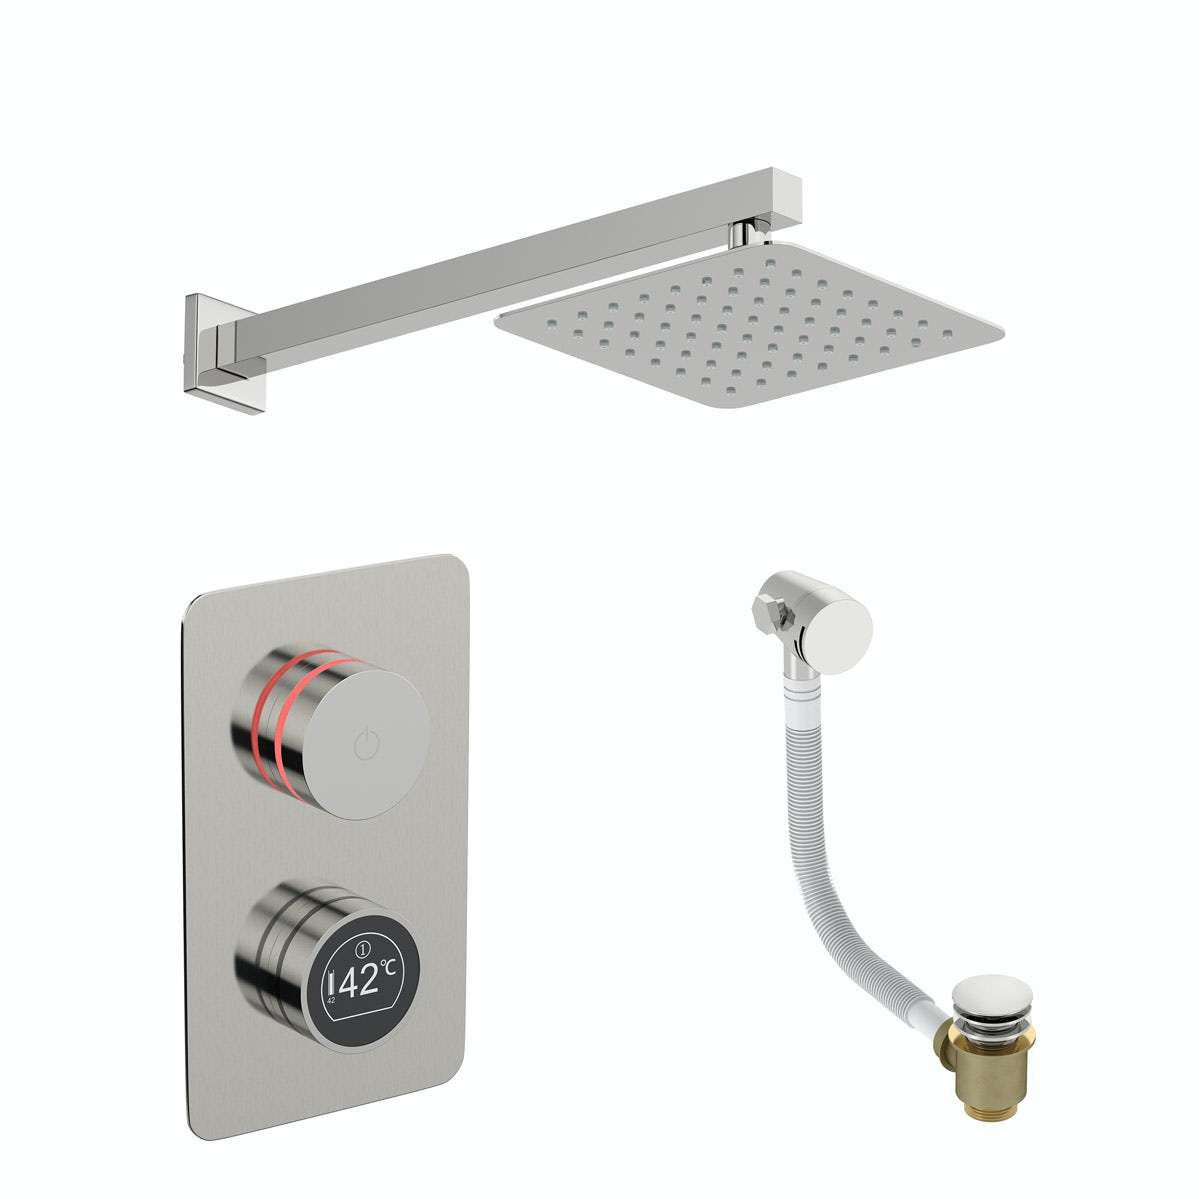 Mode Touch digital thermostatic shower set with square wall arm and bath filler waste